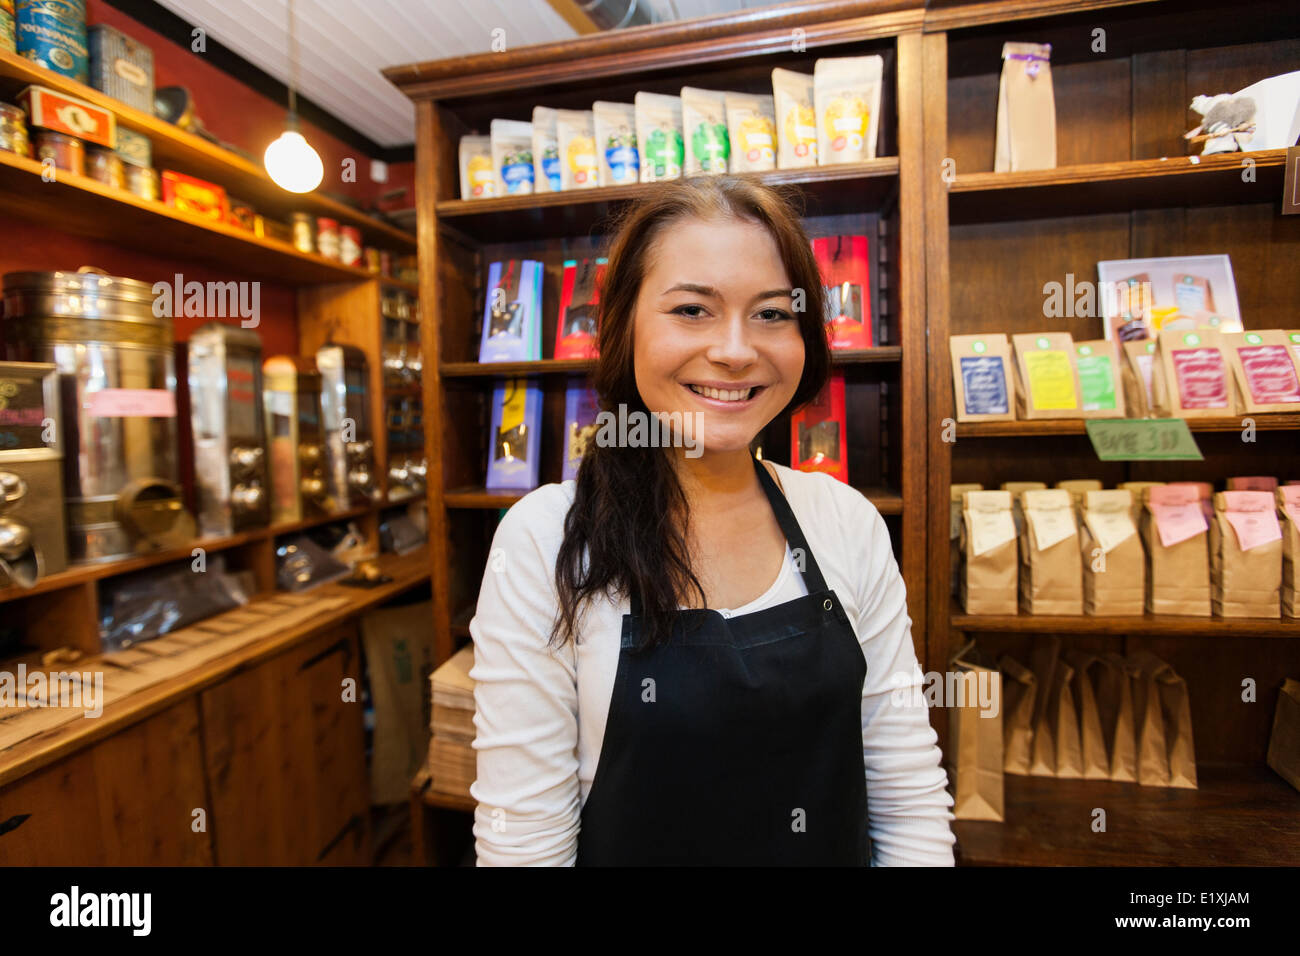 Portrait of female salesperson smiling in coffee shop Stock Photo